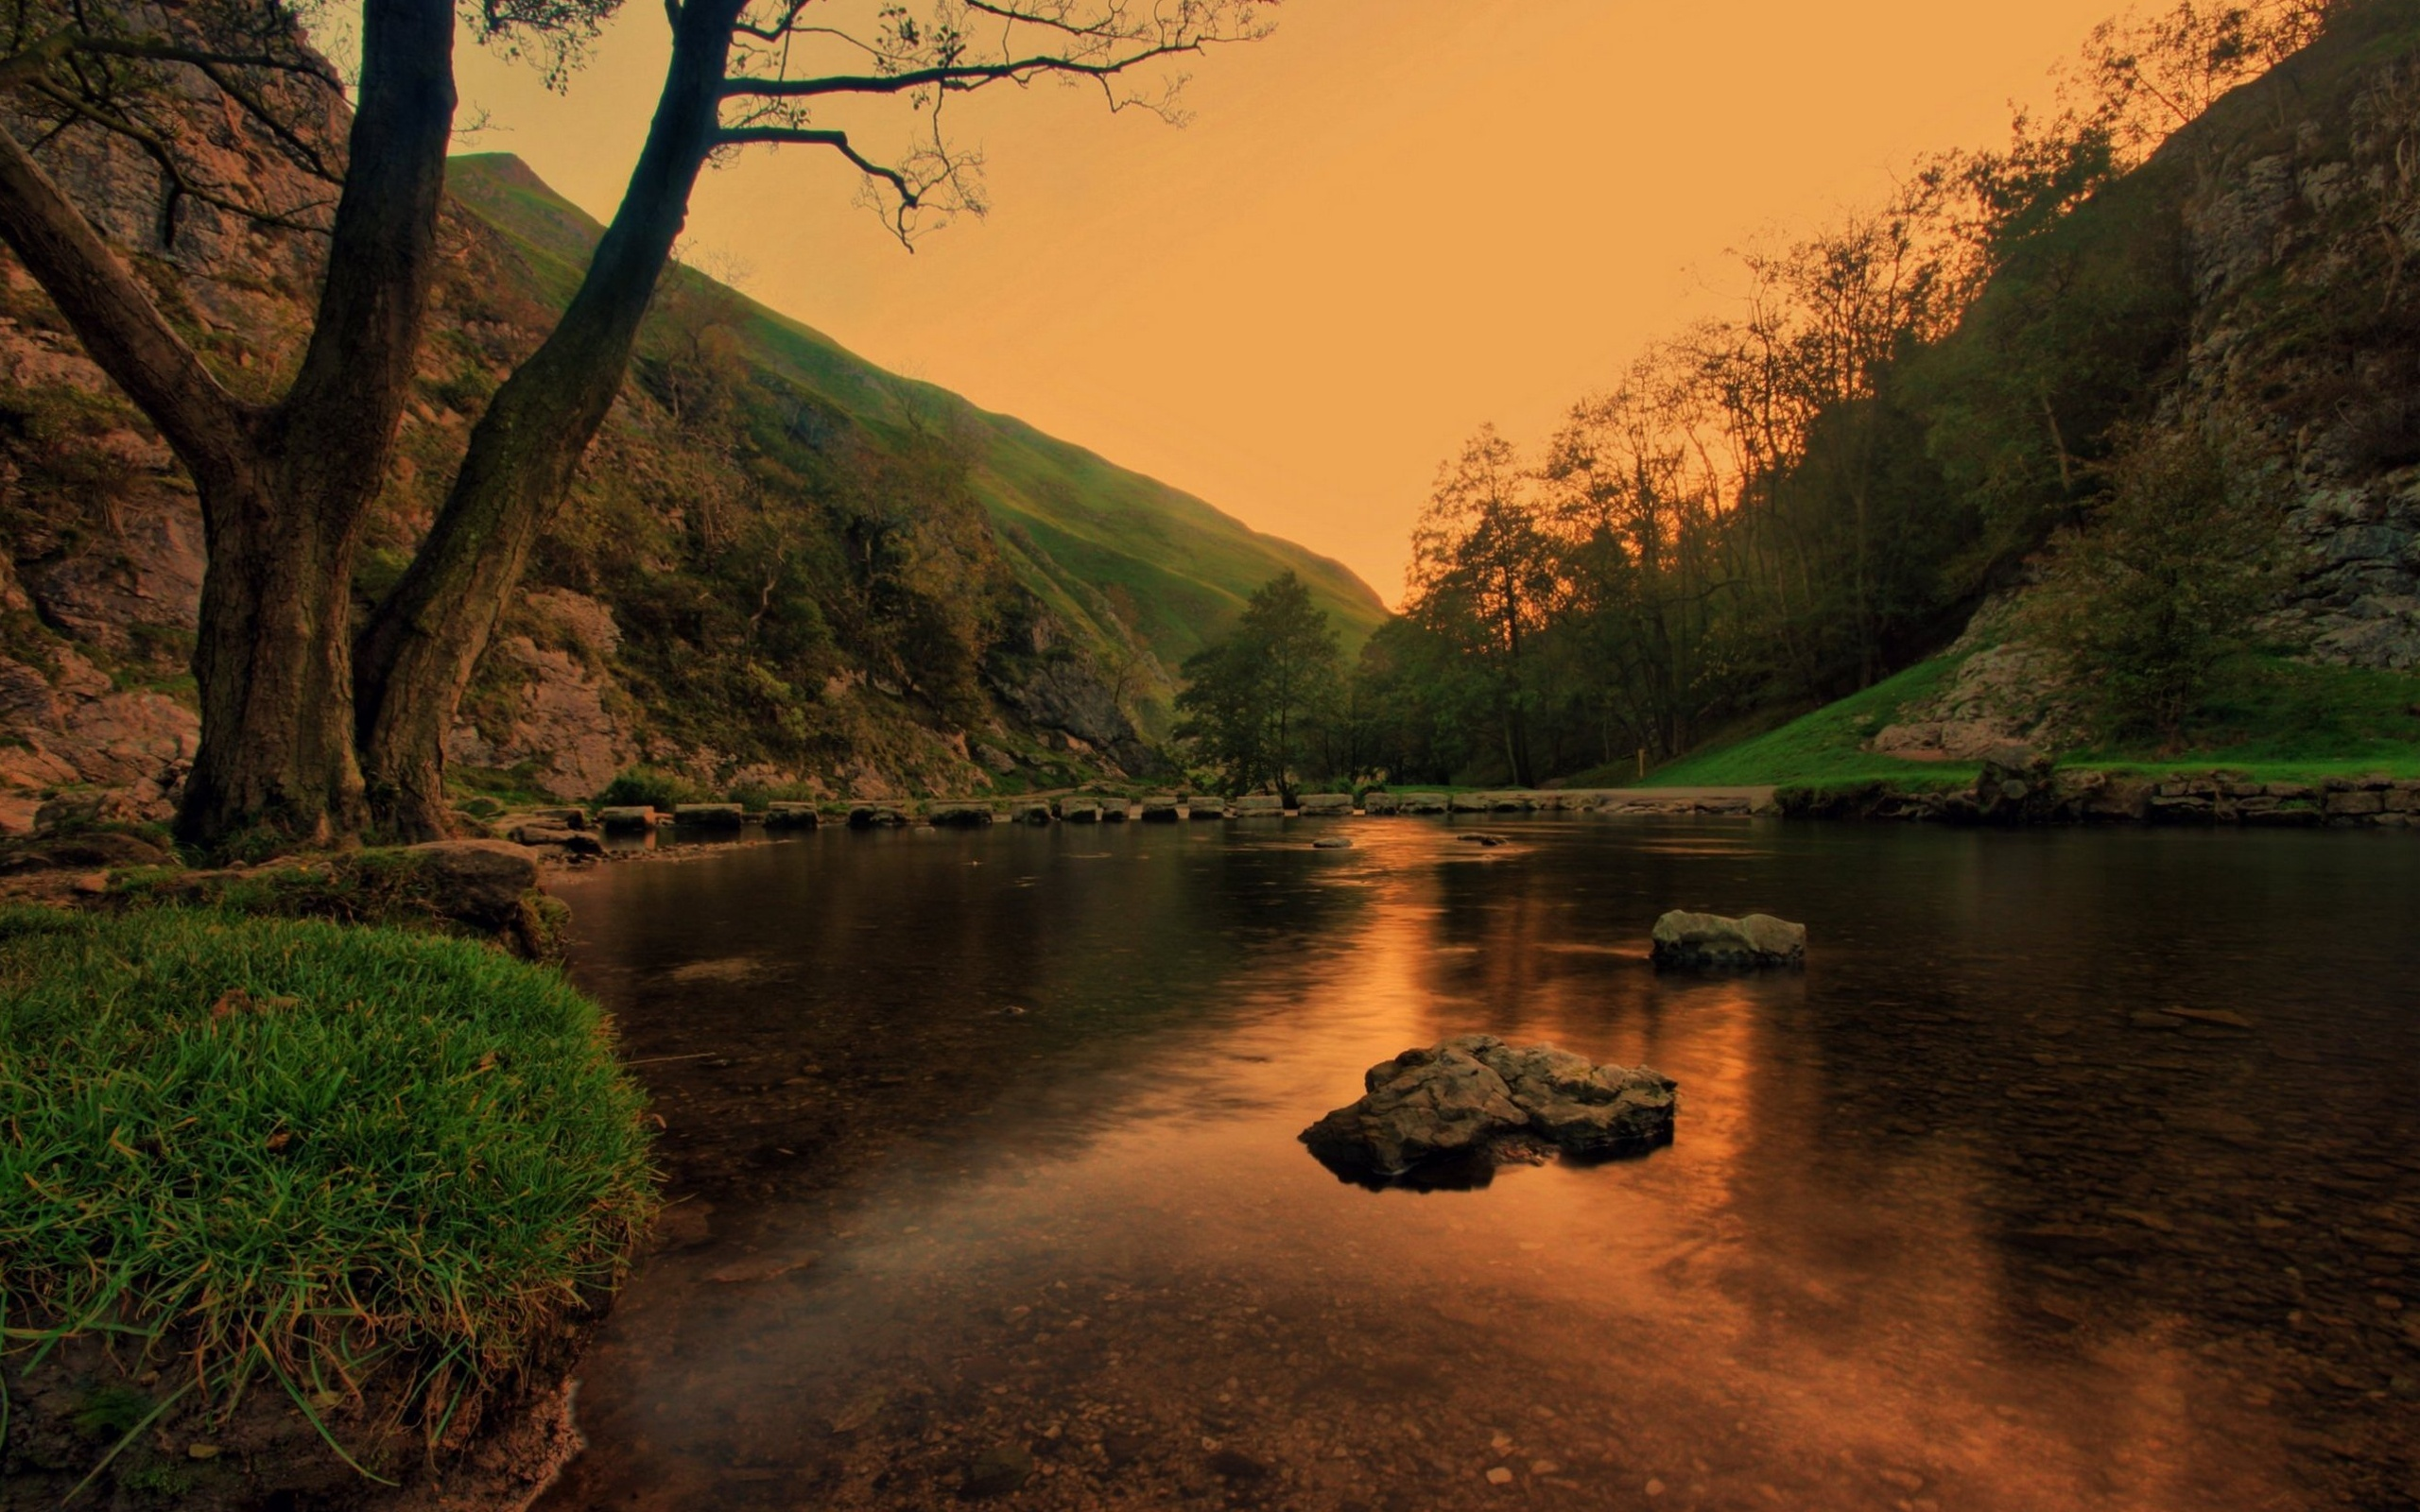 Hd Nature Wallpapers File Widescreen 2 HD Wallpapers